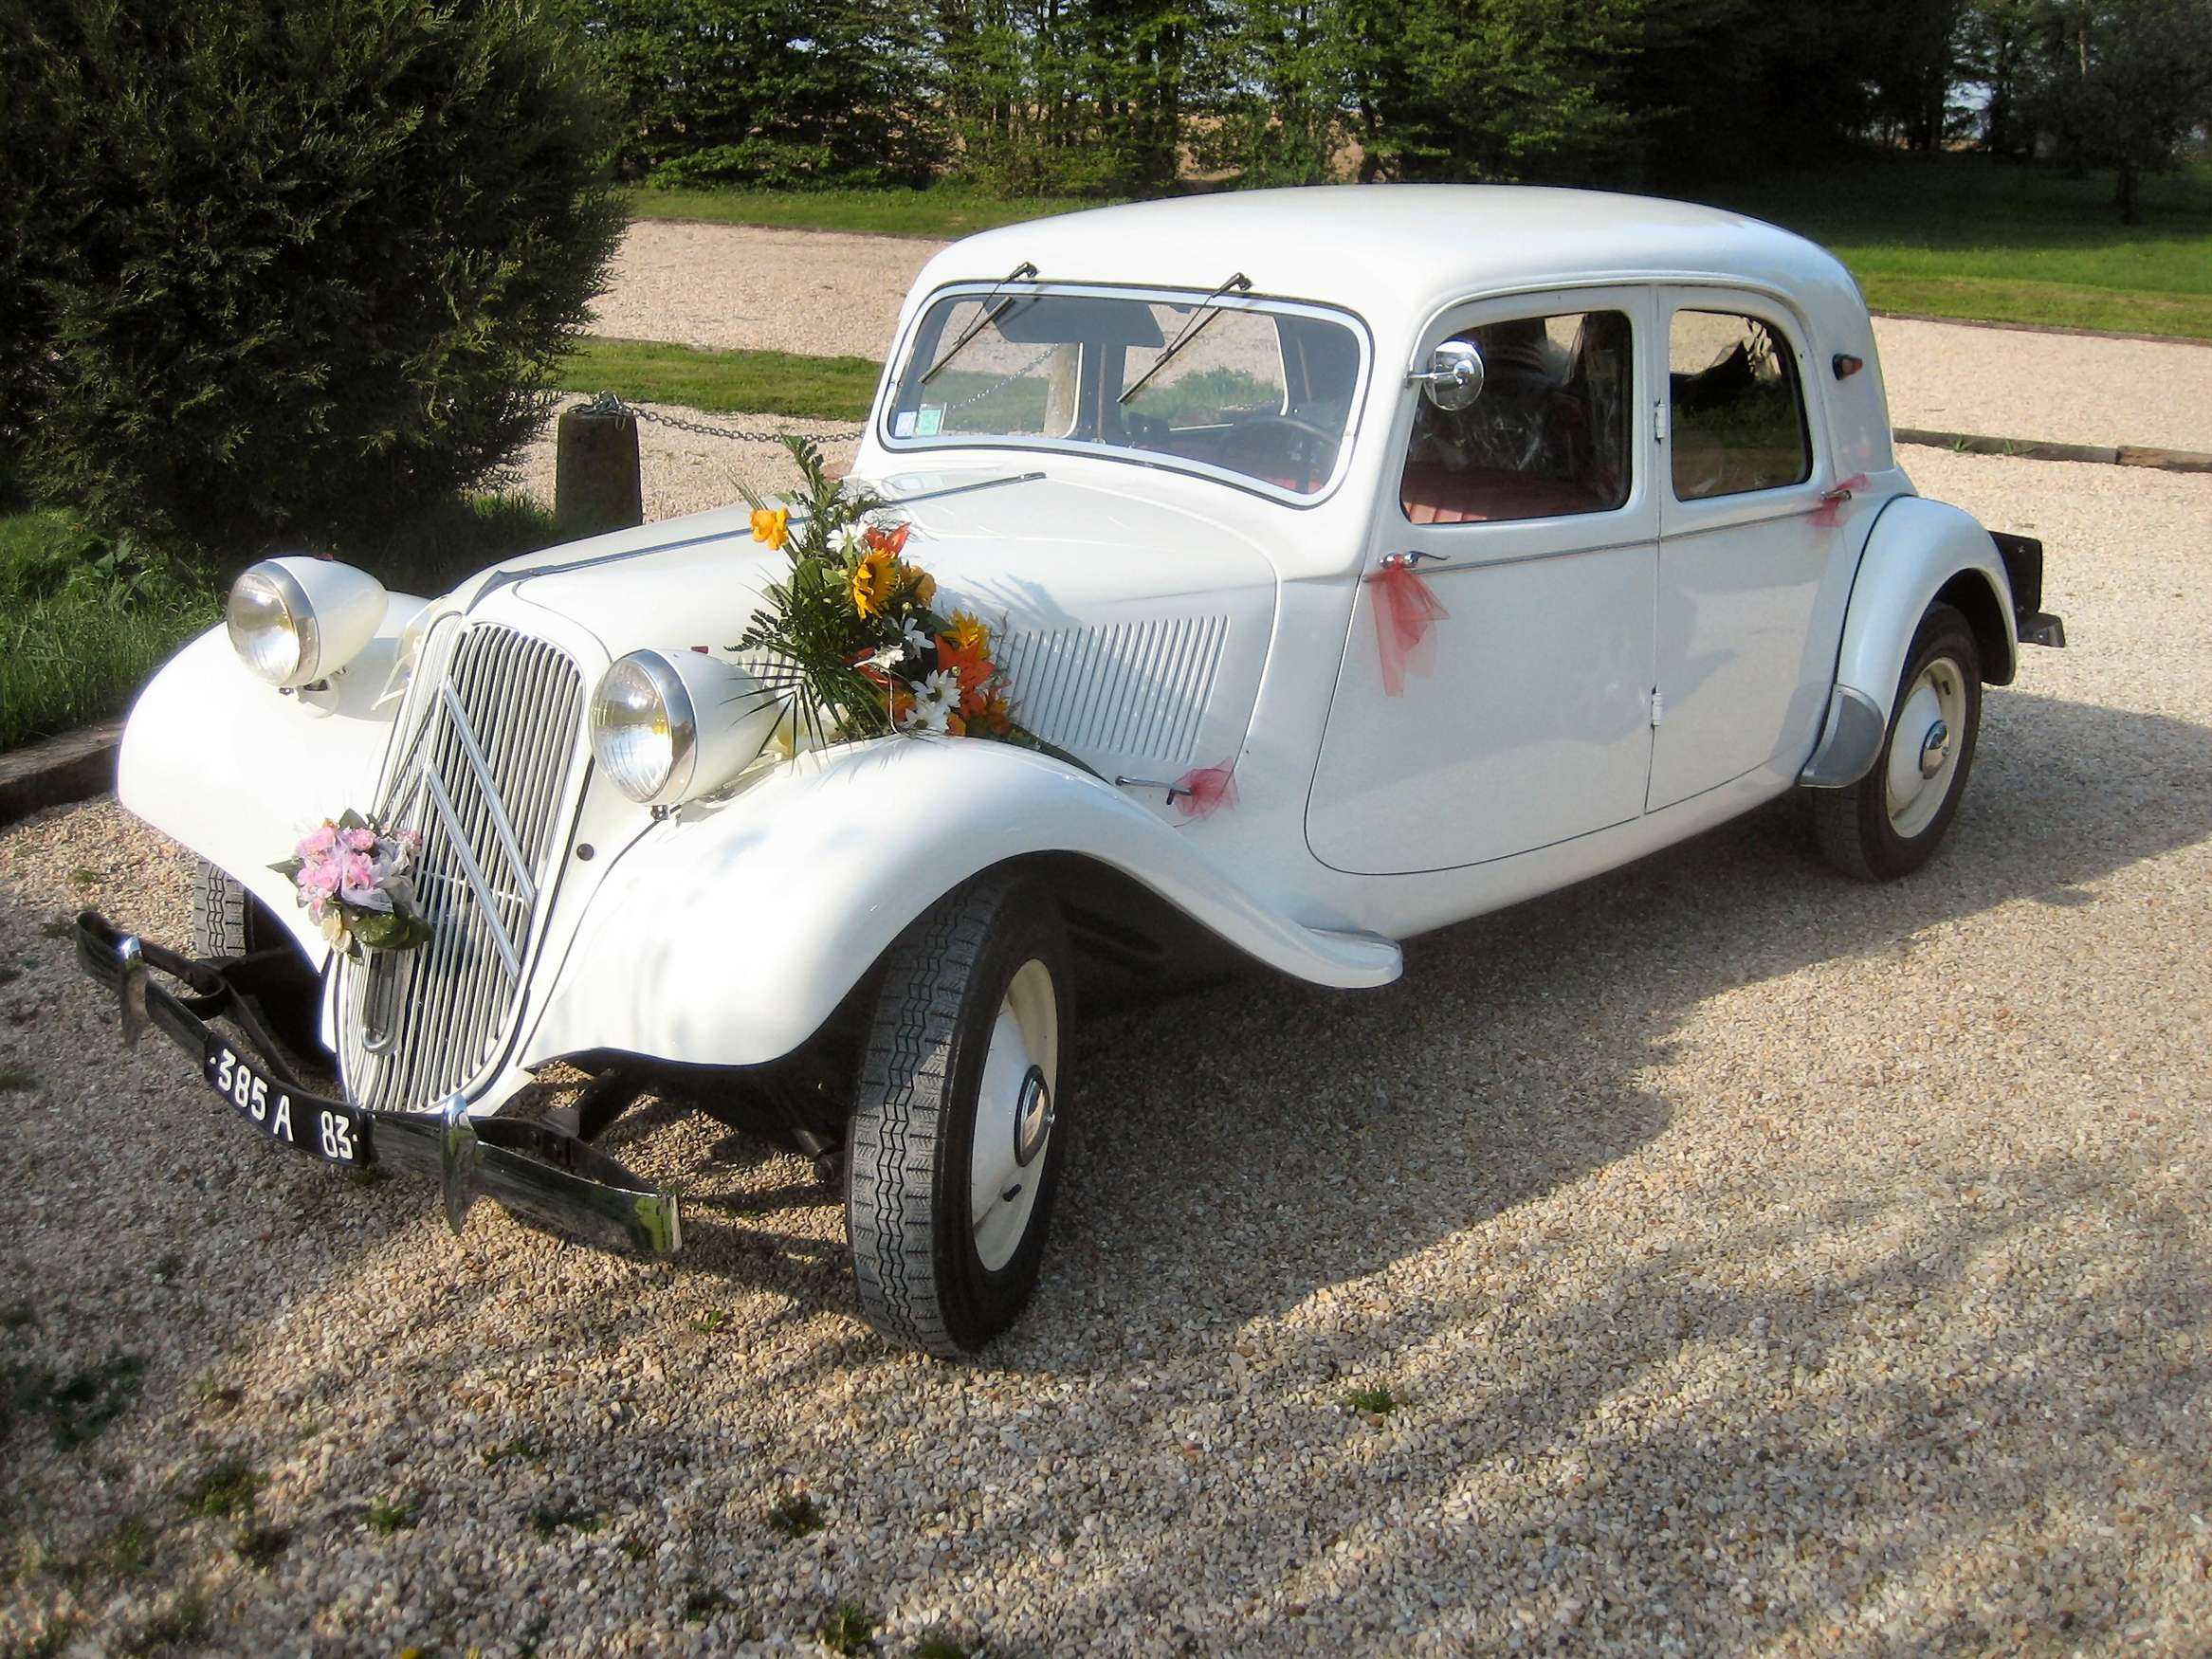 Citroen Traction Avant #9990592